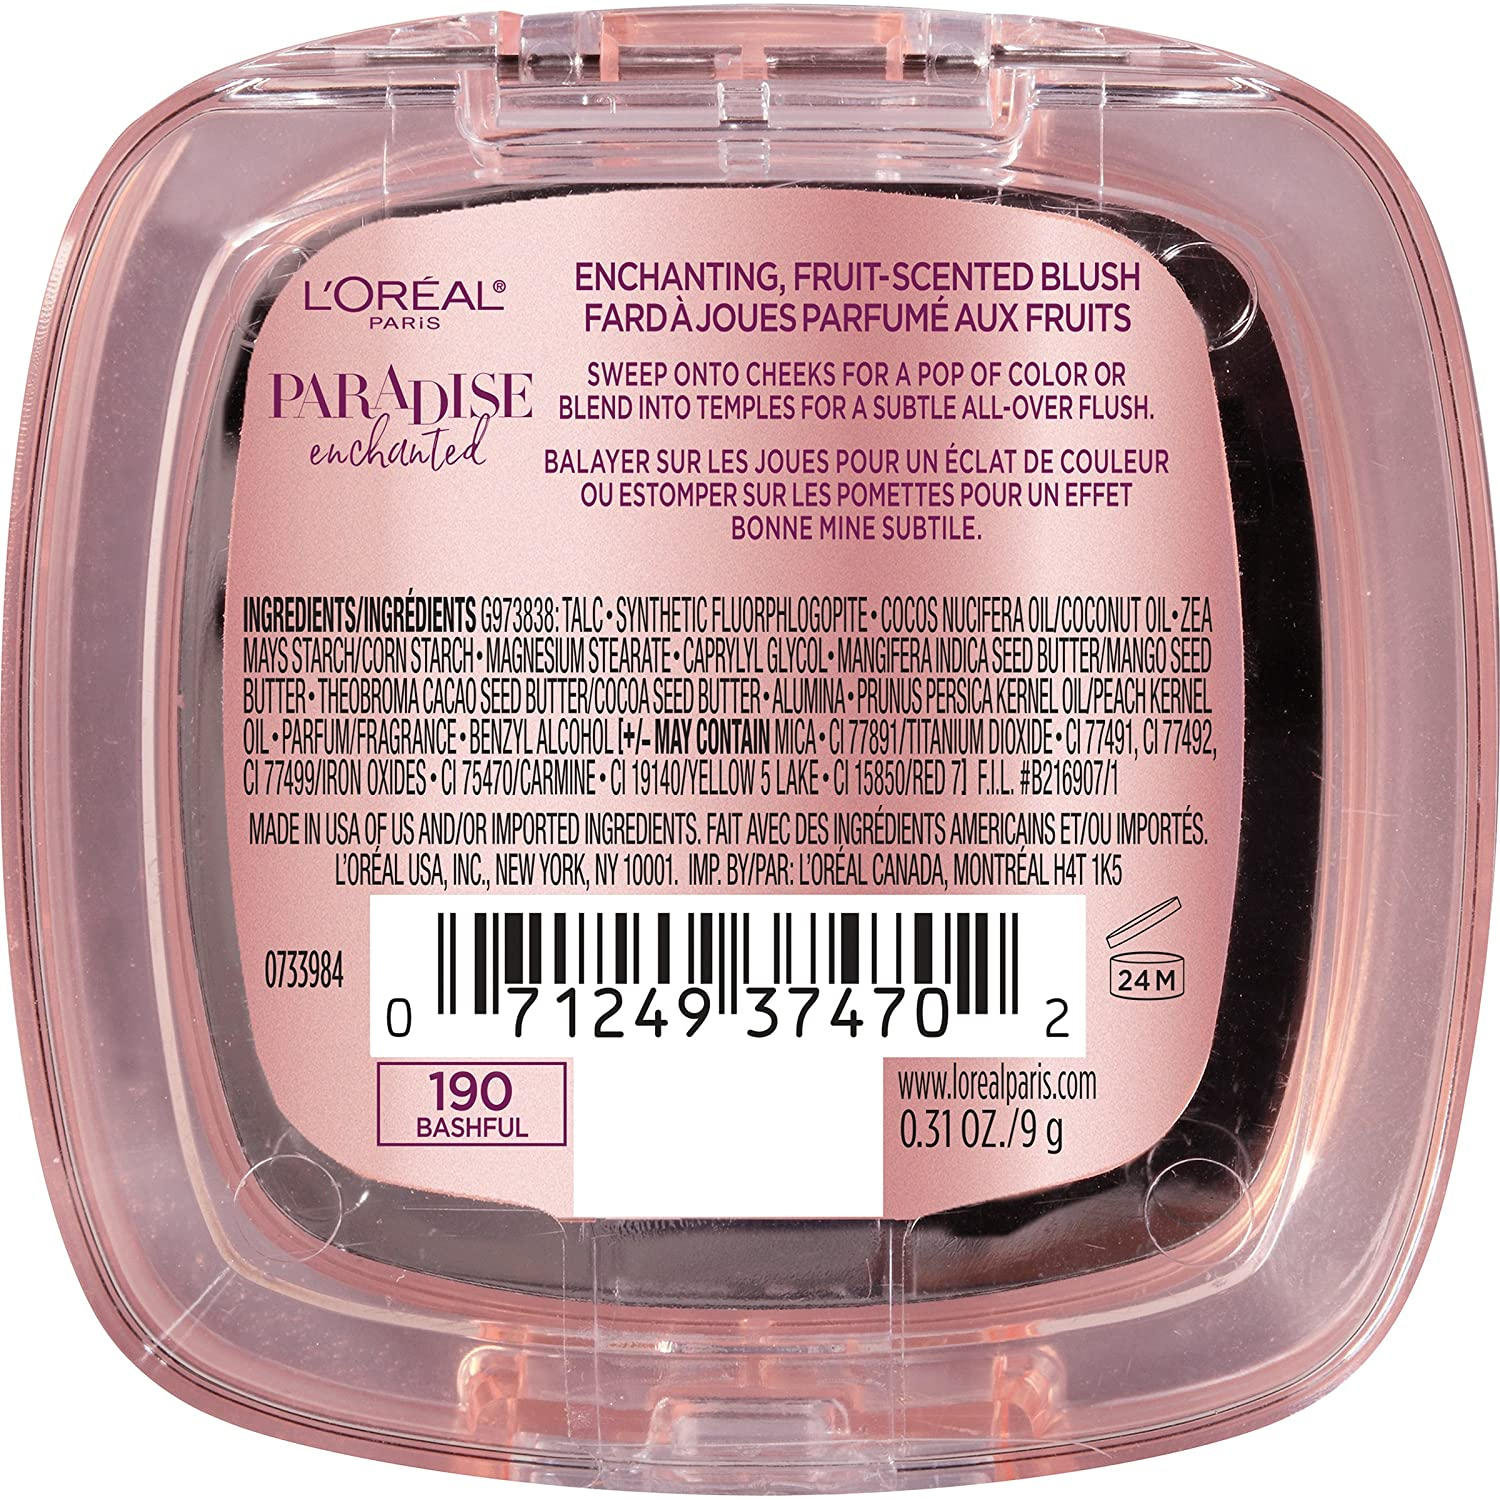 048ffcafd0e Amazon.com: L'Oreal Paris Cosmetics Paradise Enchanted Fruit-Scented Blush  Makeup, Just Curious, 0.31 Ounce: Beauty